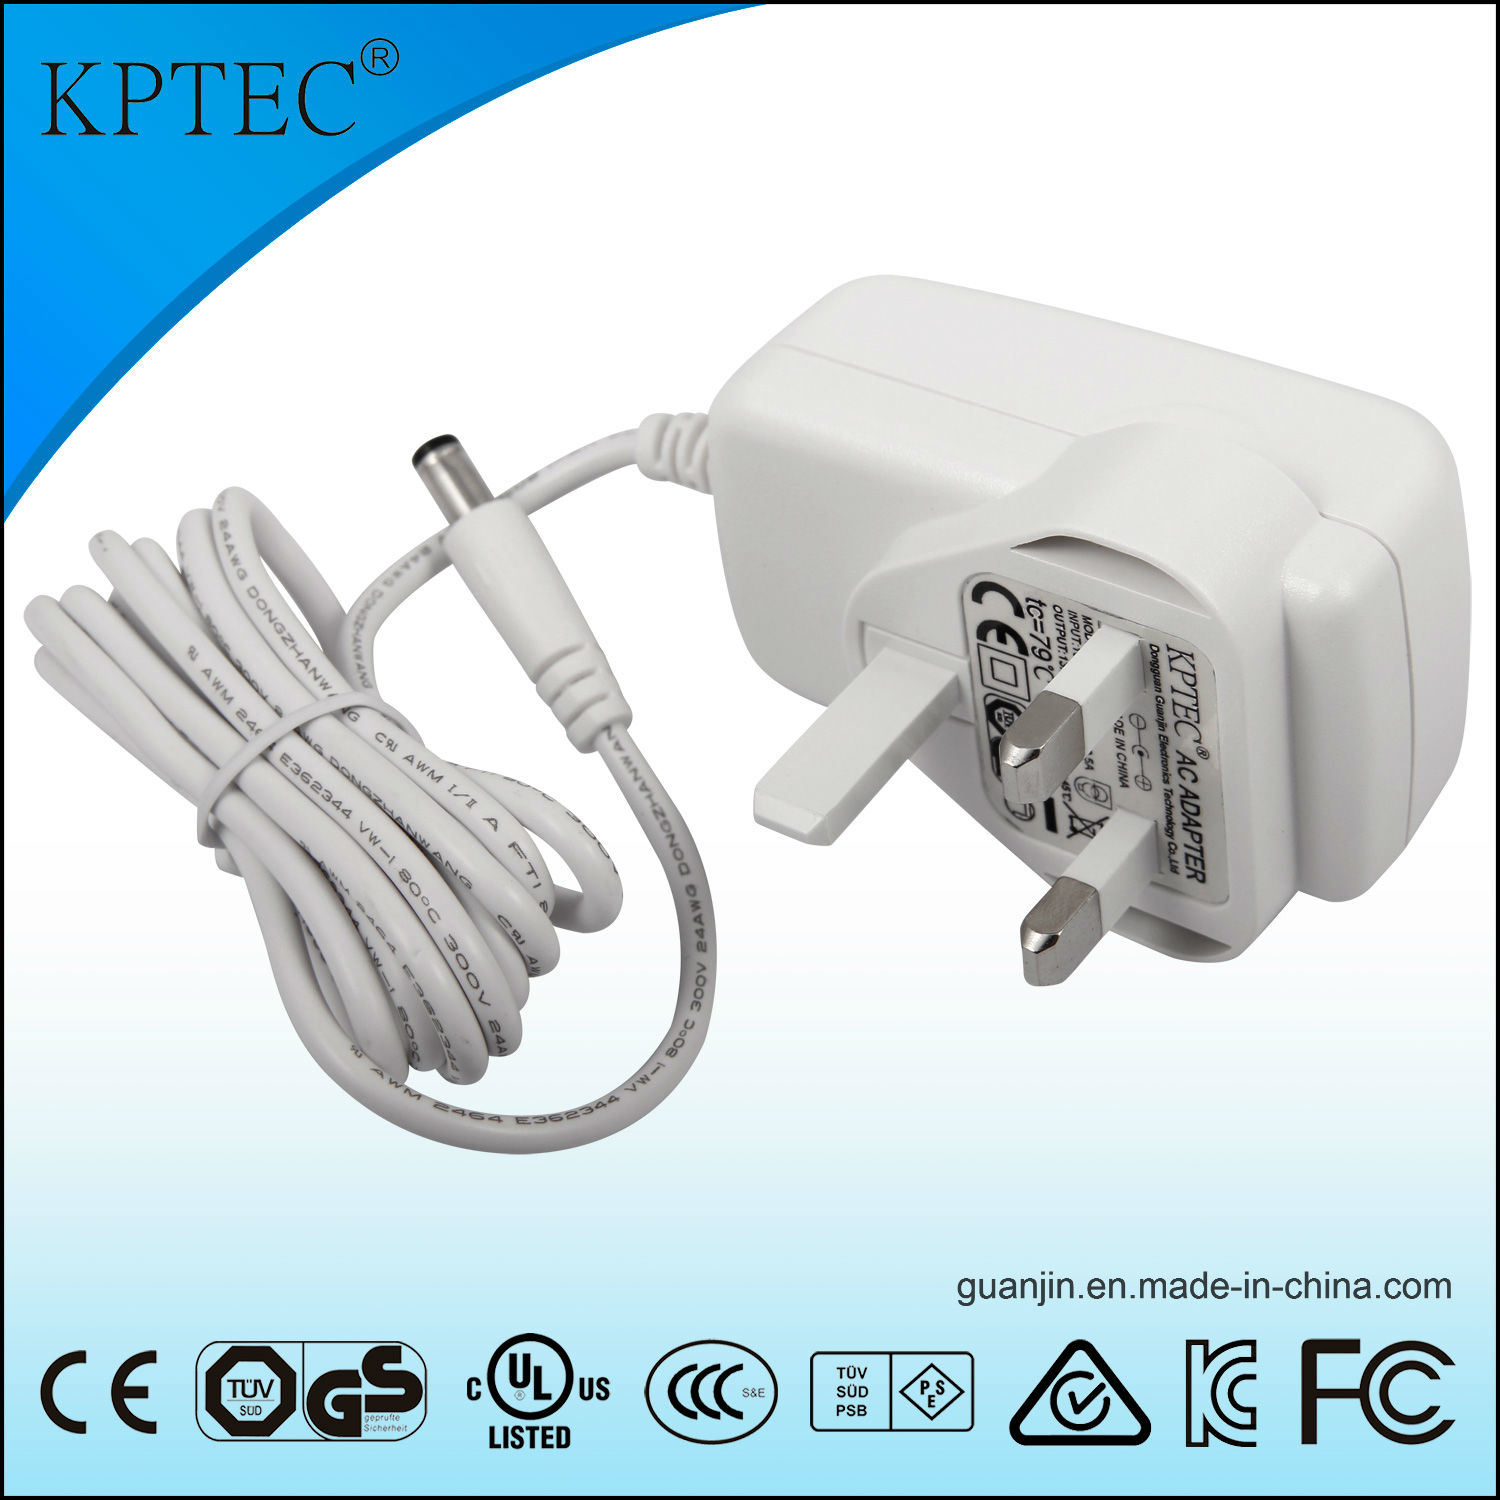 12V/1A/15W AC/DC Switching Power Adapter Supply with Ce Certificate